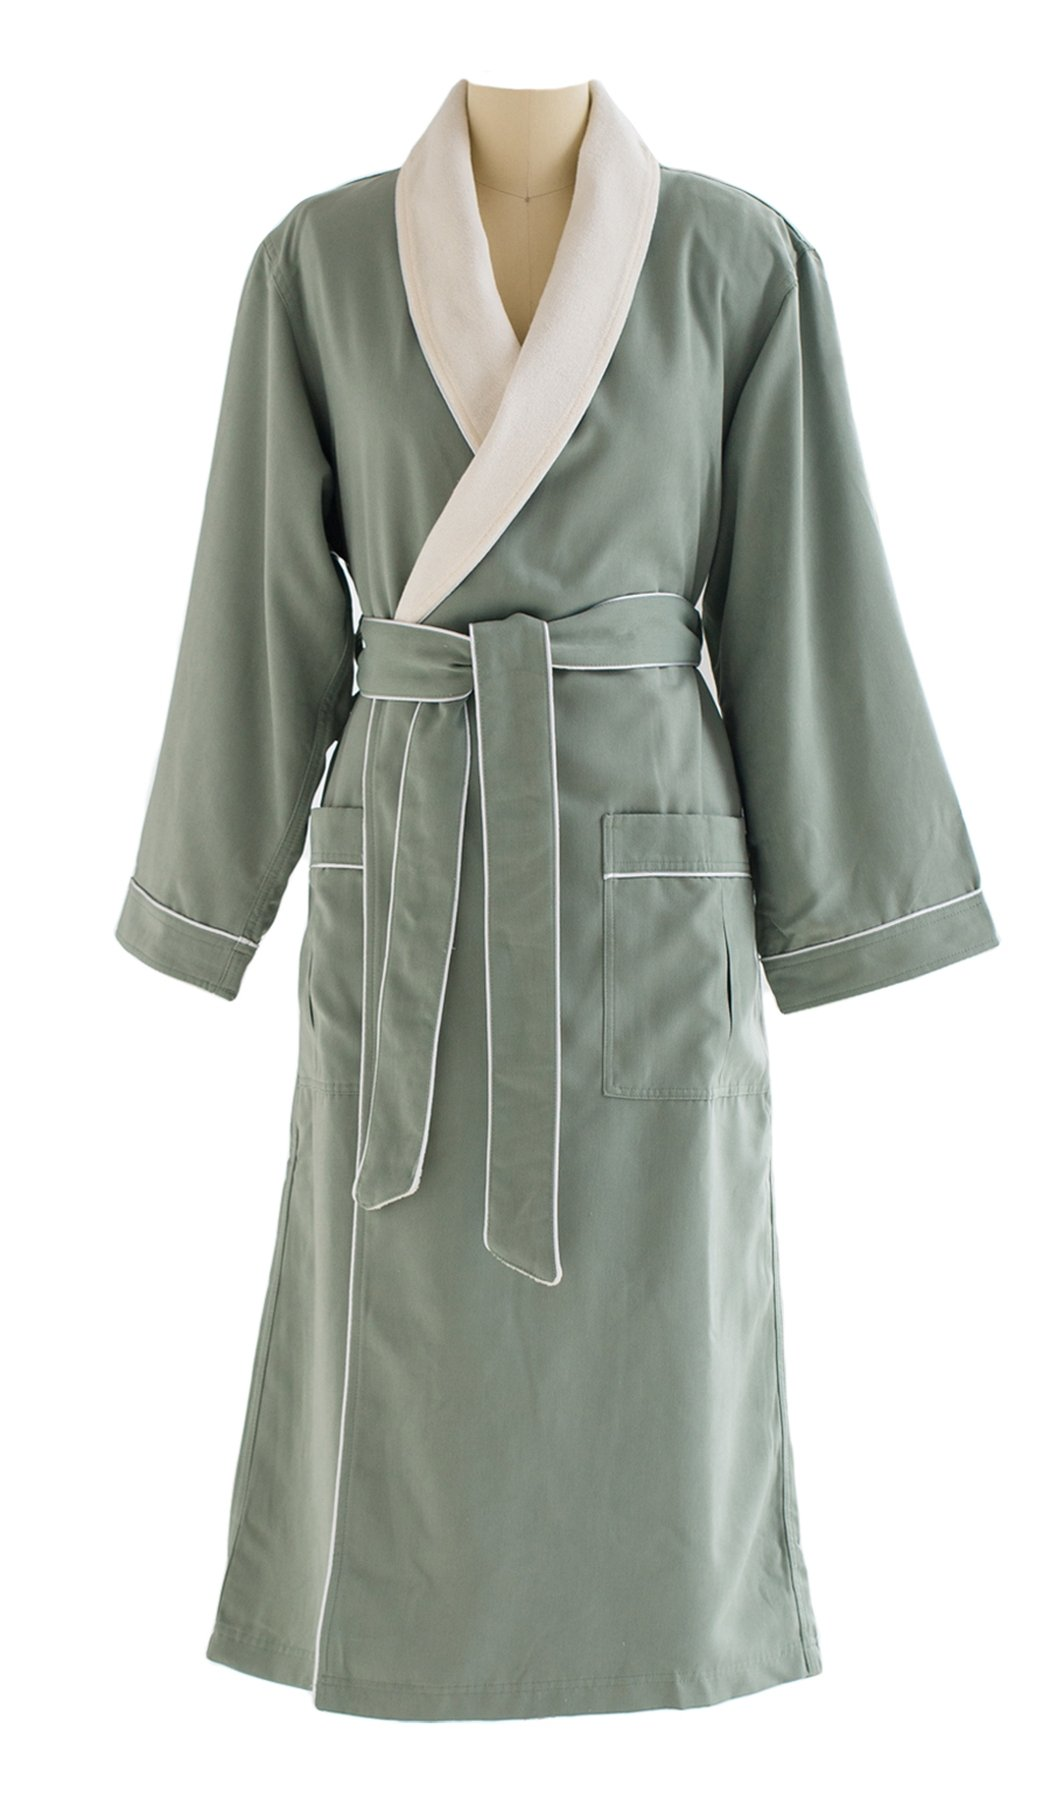 Ultimate Doeskin Microfiber Bathrobe Lined In Terry - Luxury Spa Bathrobe for Women and Men - Seafoam/Eggshell - X-Small